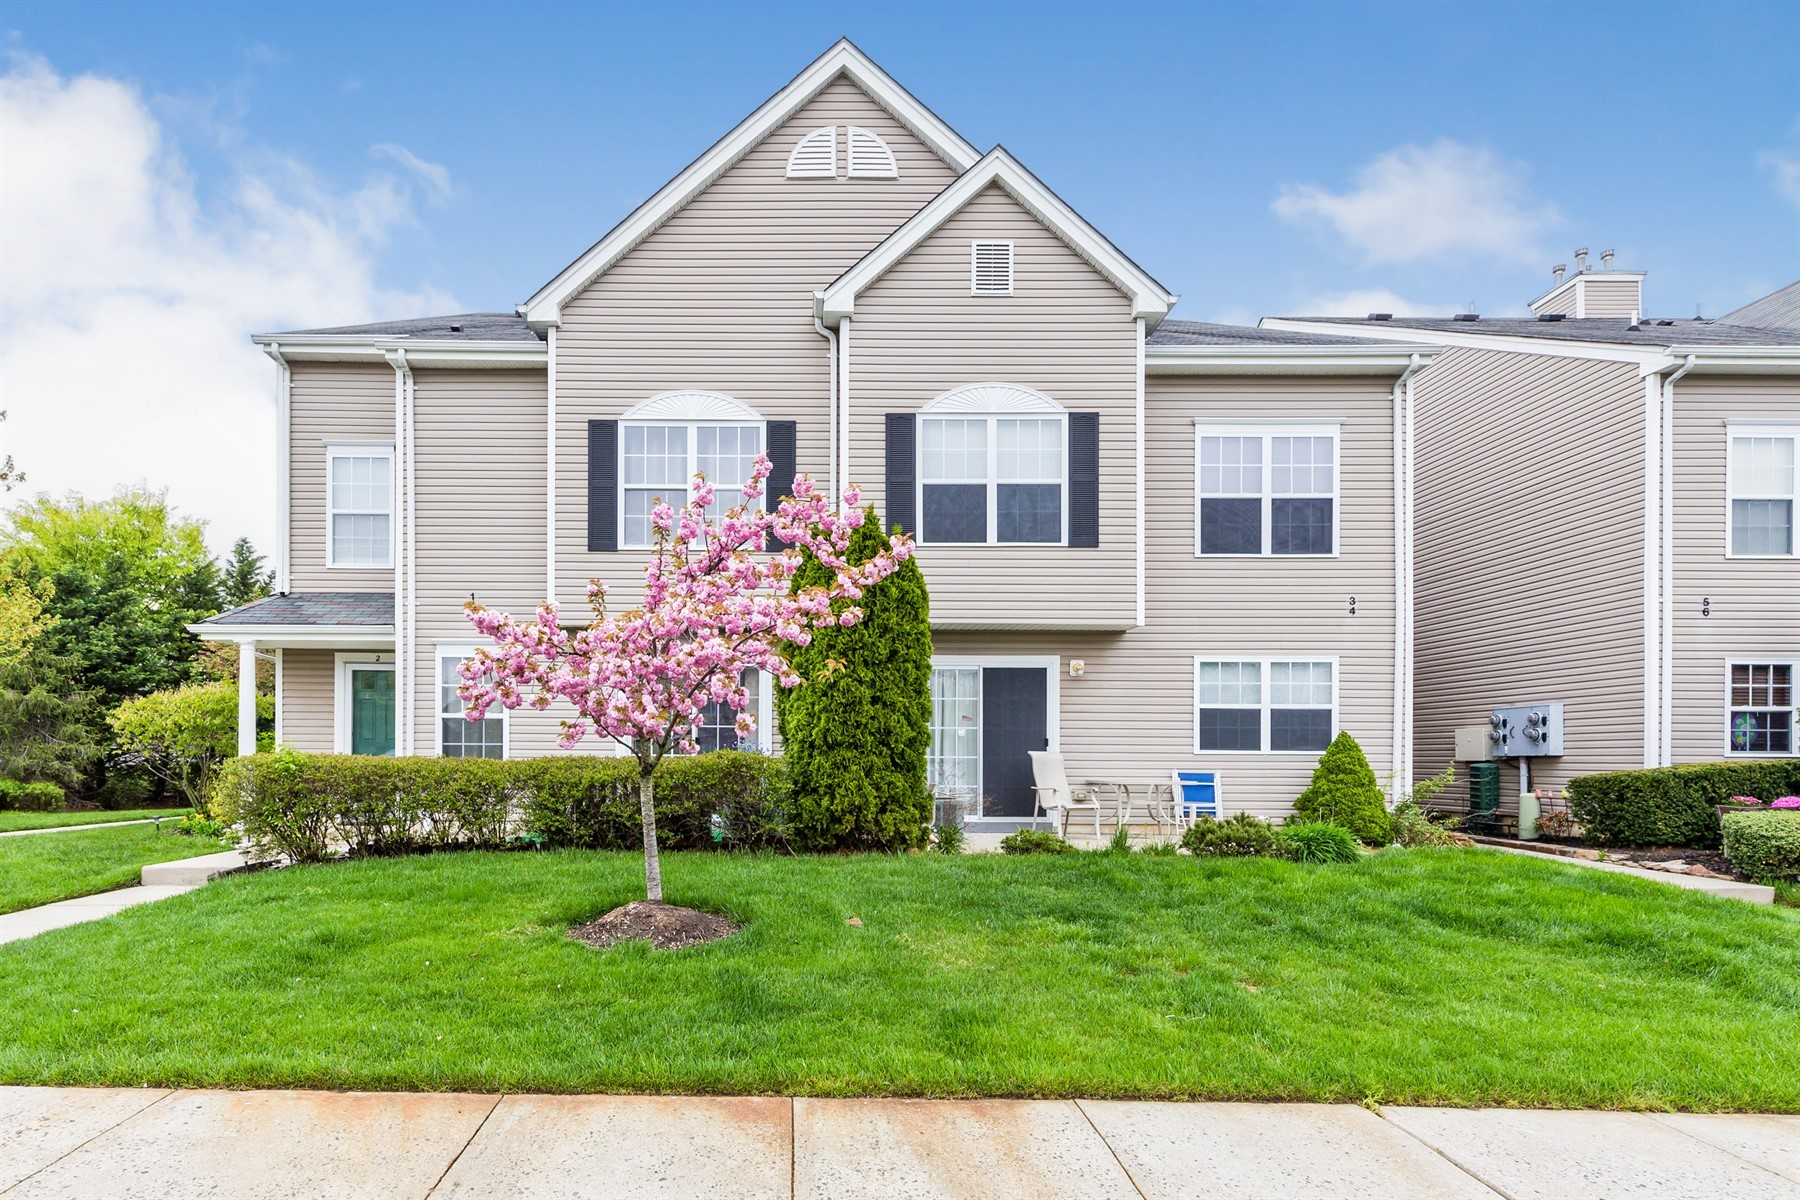 townhouses للـ Sale في Park Place II 3 Saint Paul Court, Tinton Falls, New Jersey 07712 United States